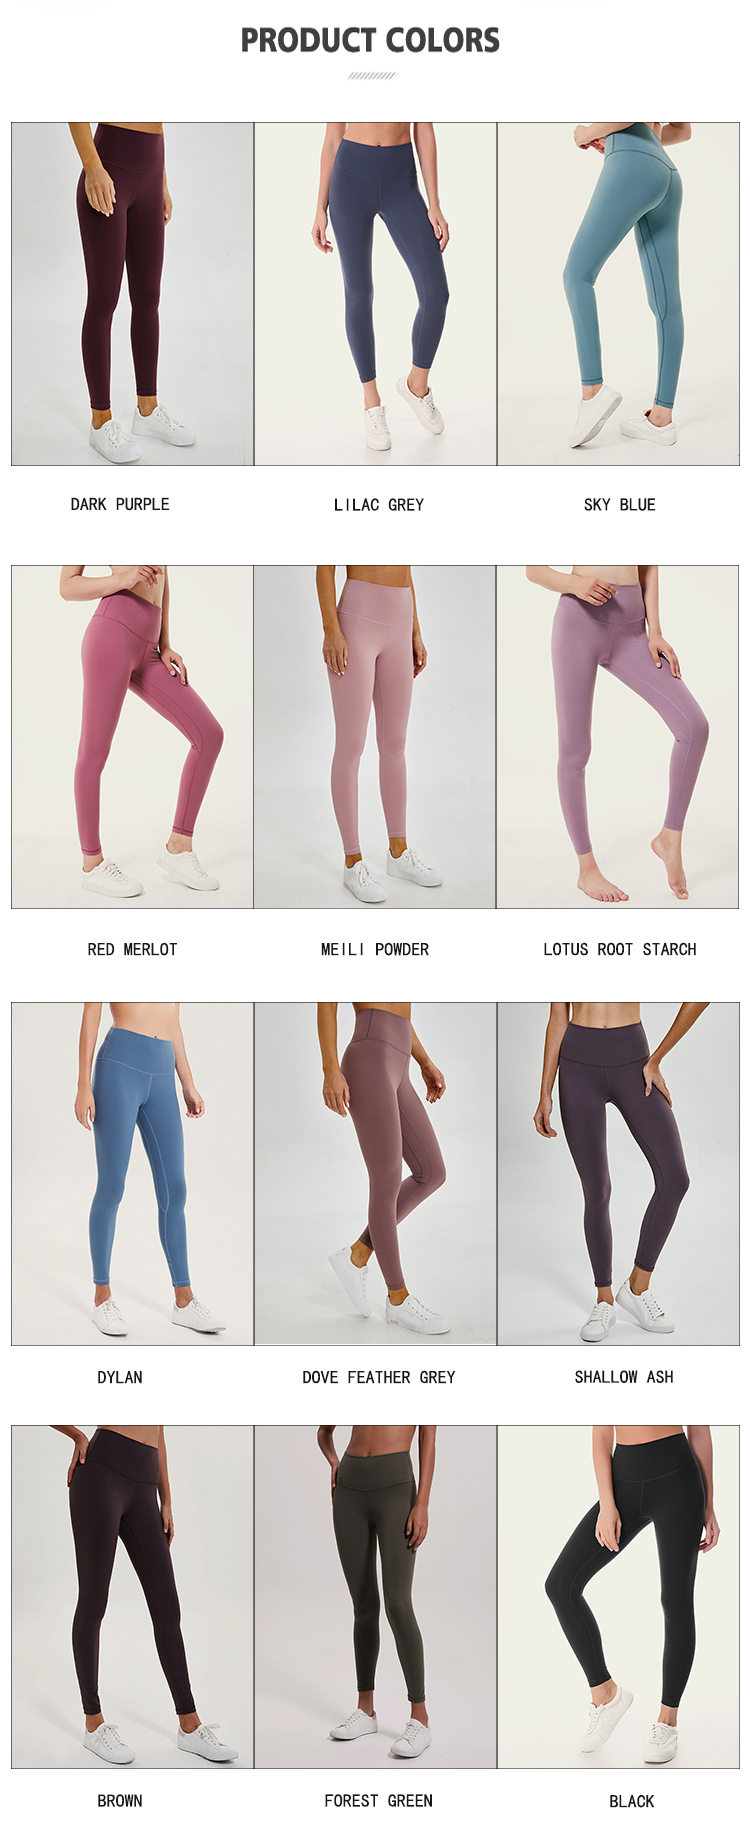 Z18025 no ver a través de sworkout fitness polainas ins lulu alinear leggings repreve leggins con el logotipo del cliente